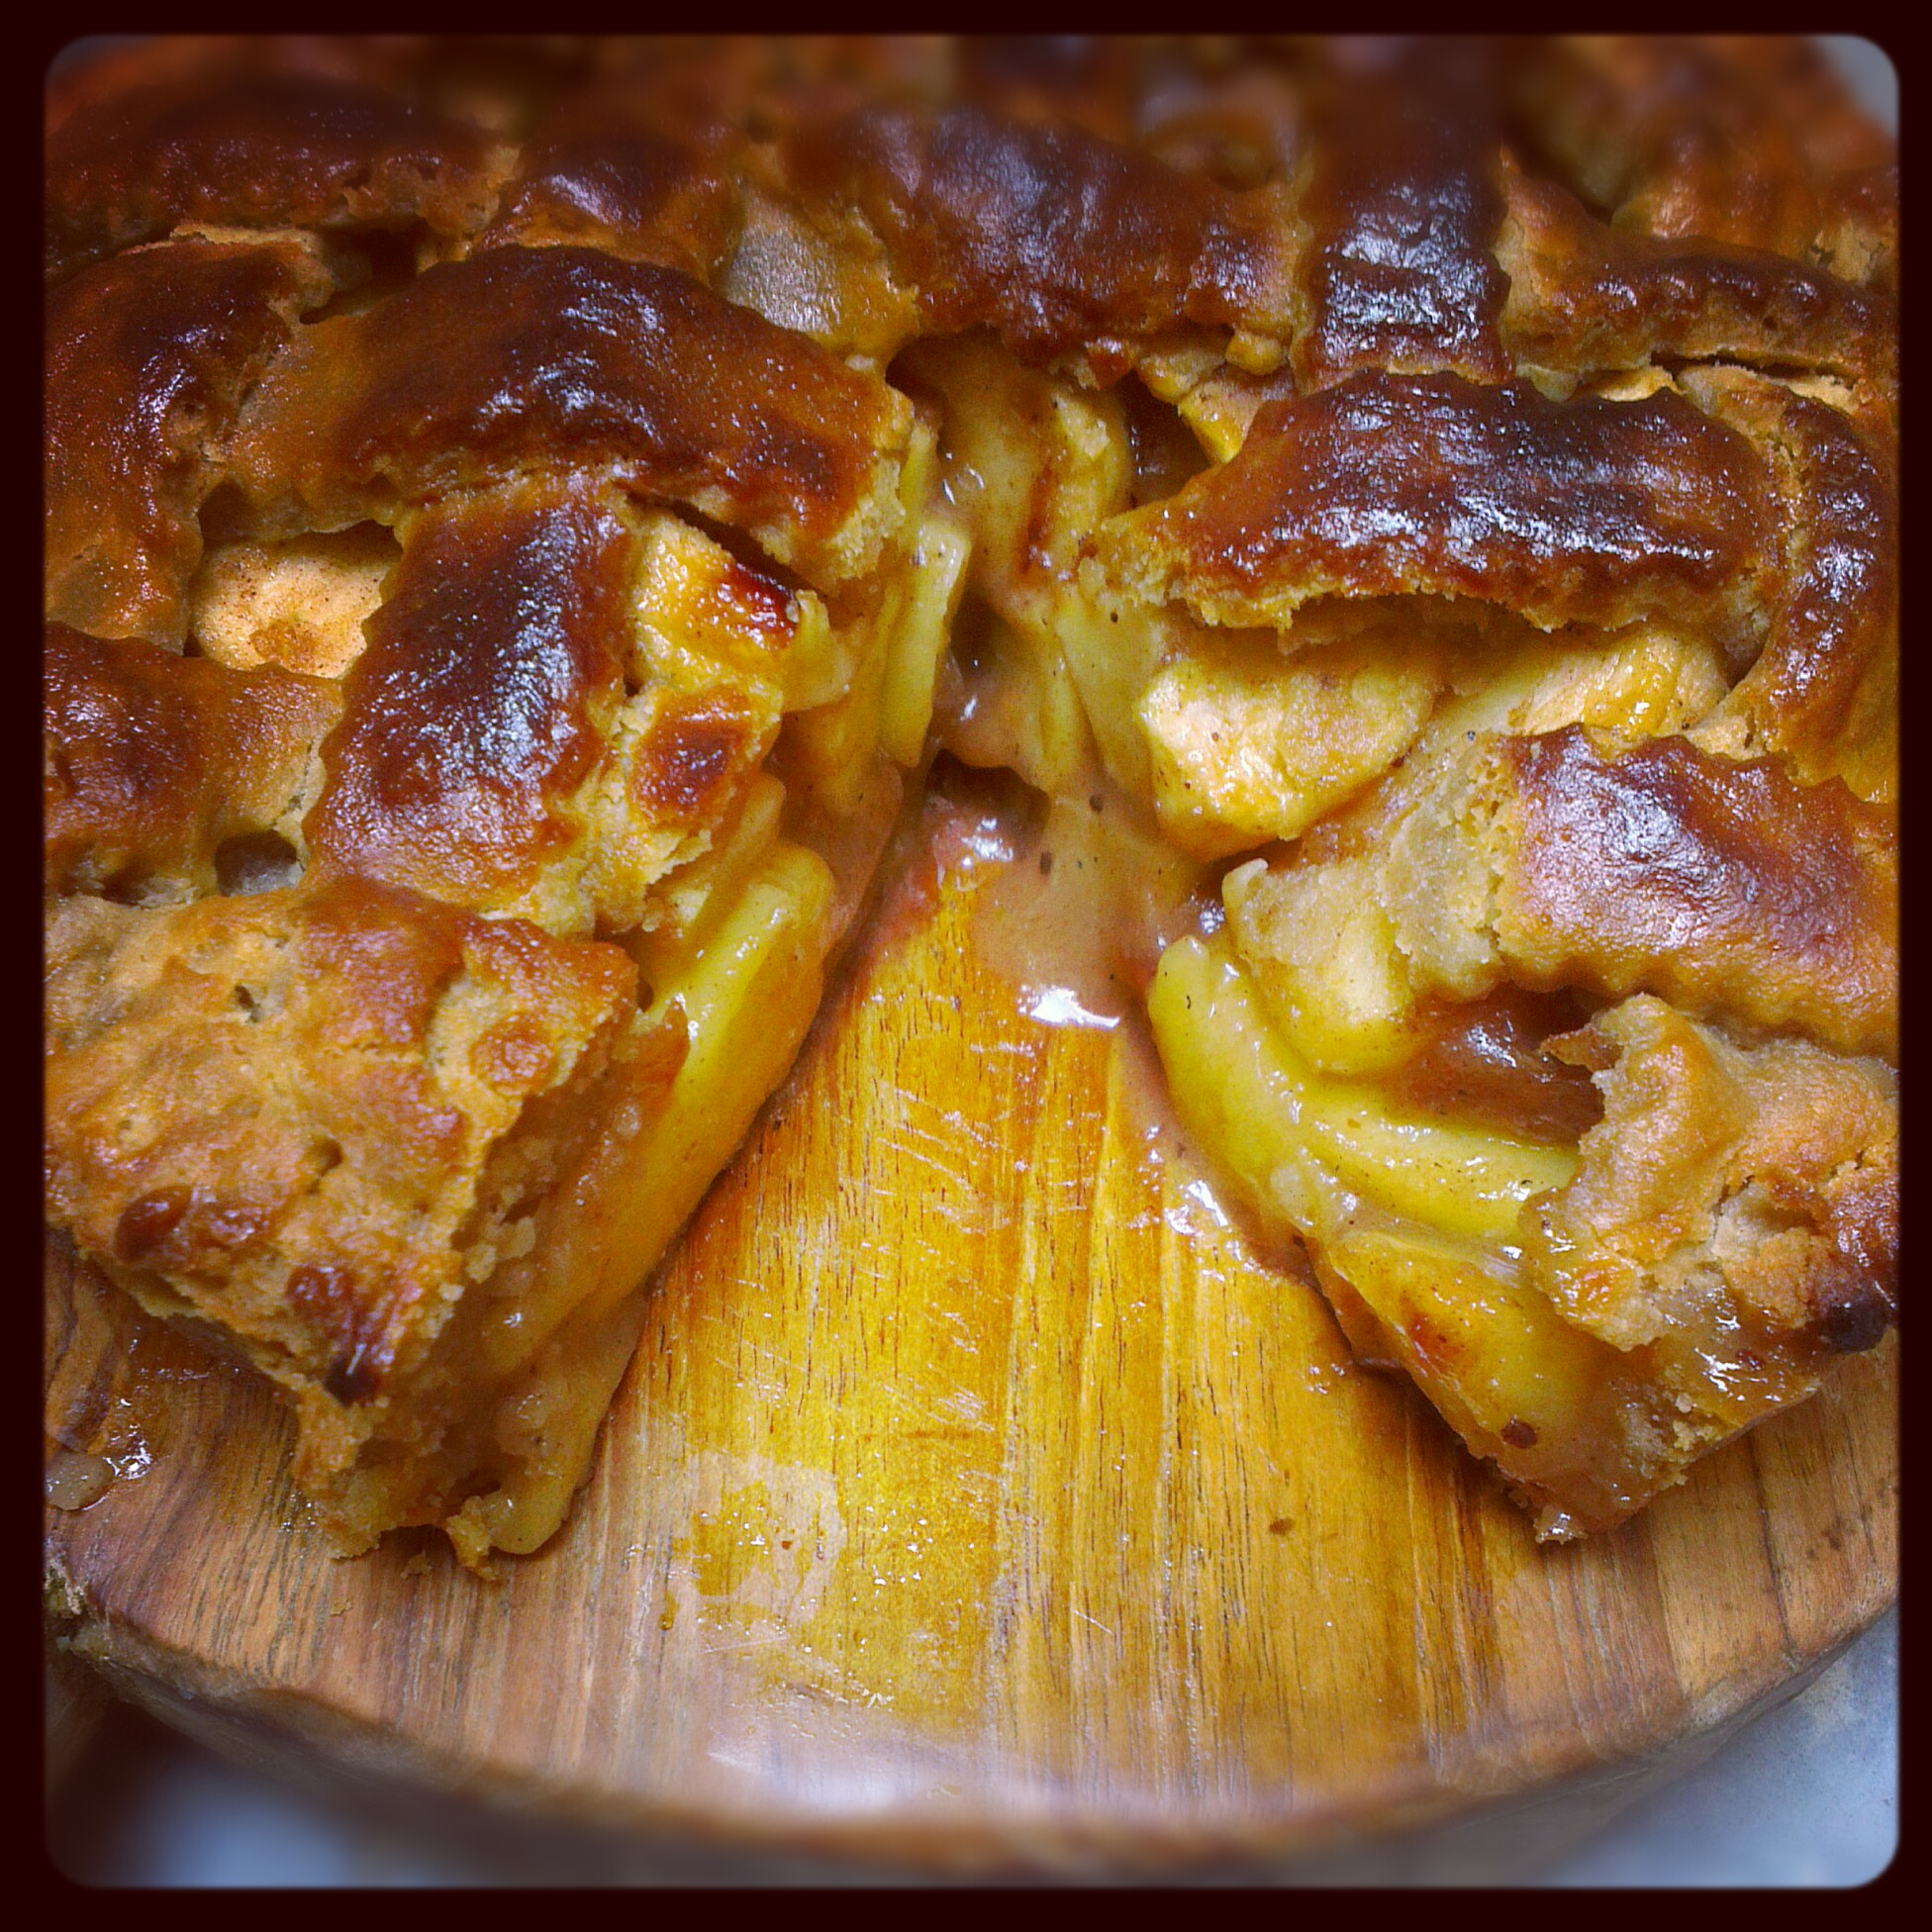 Apple Pie, with a latticed top